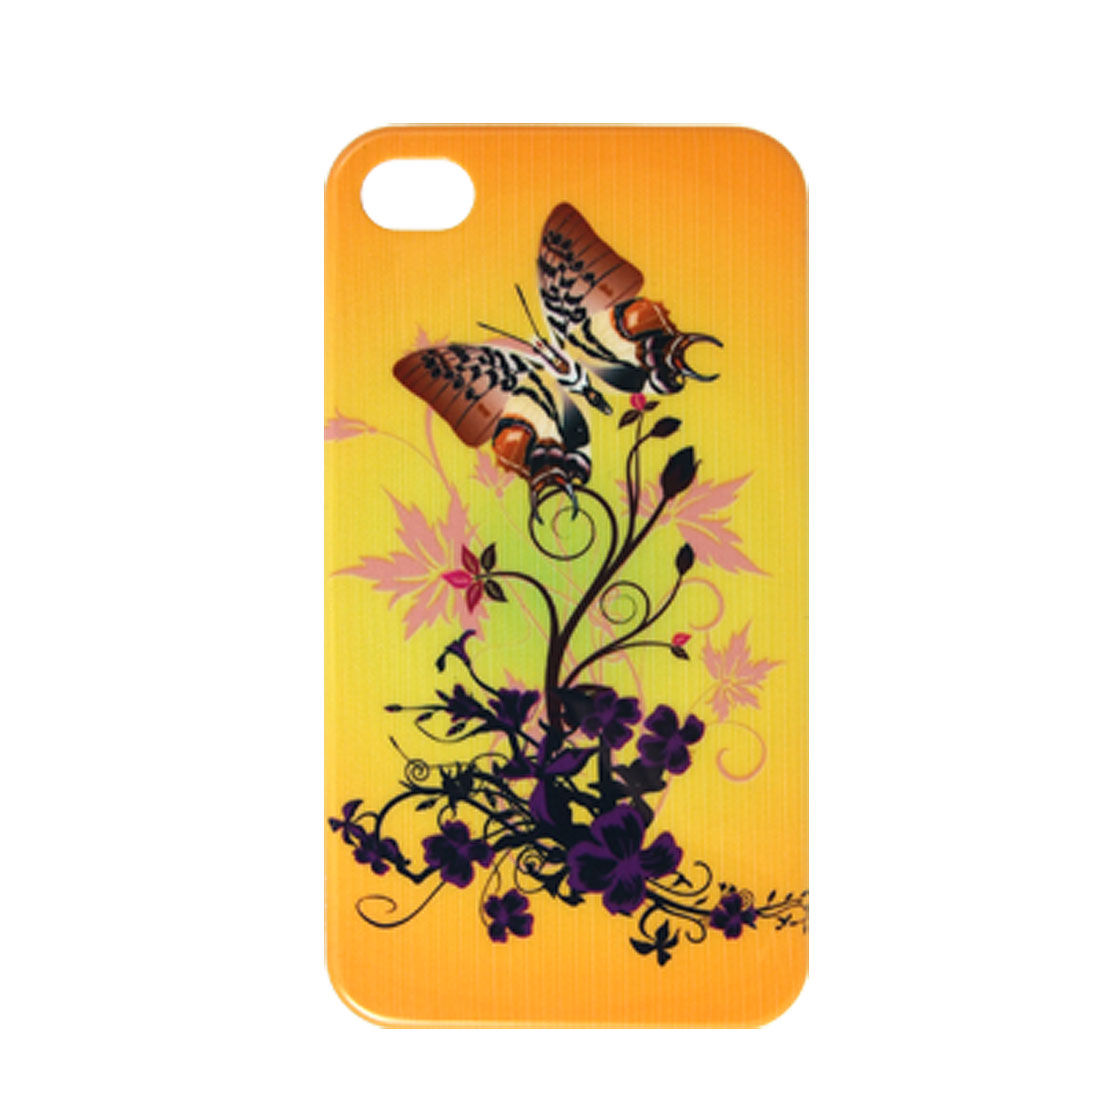 Flower Butterfly Print Plastic Case Cover for iPhone 4 4G